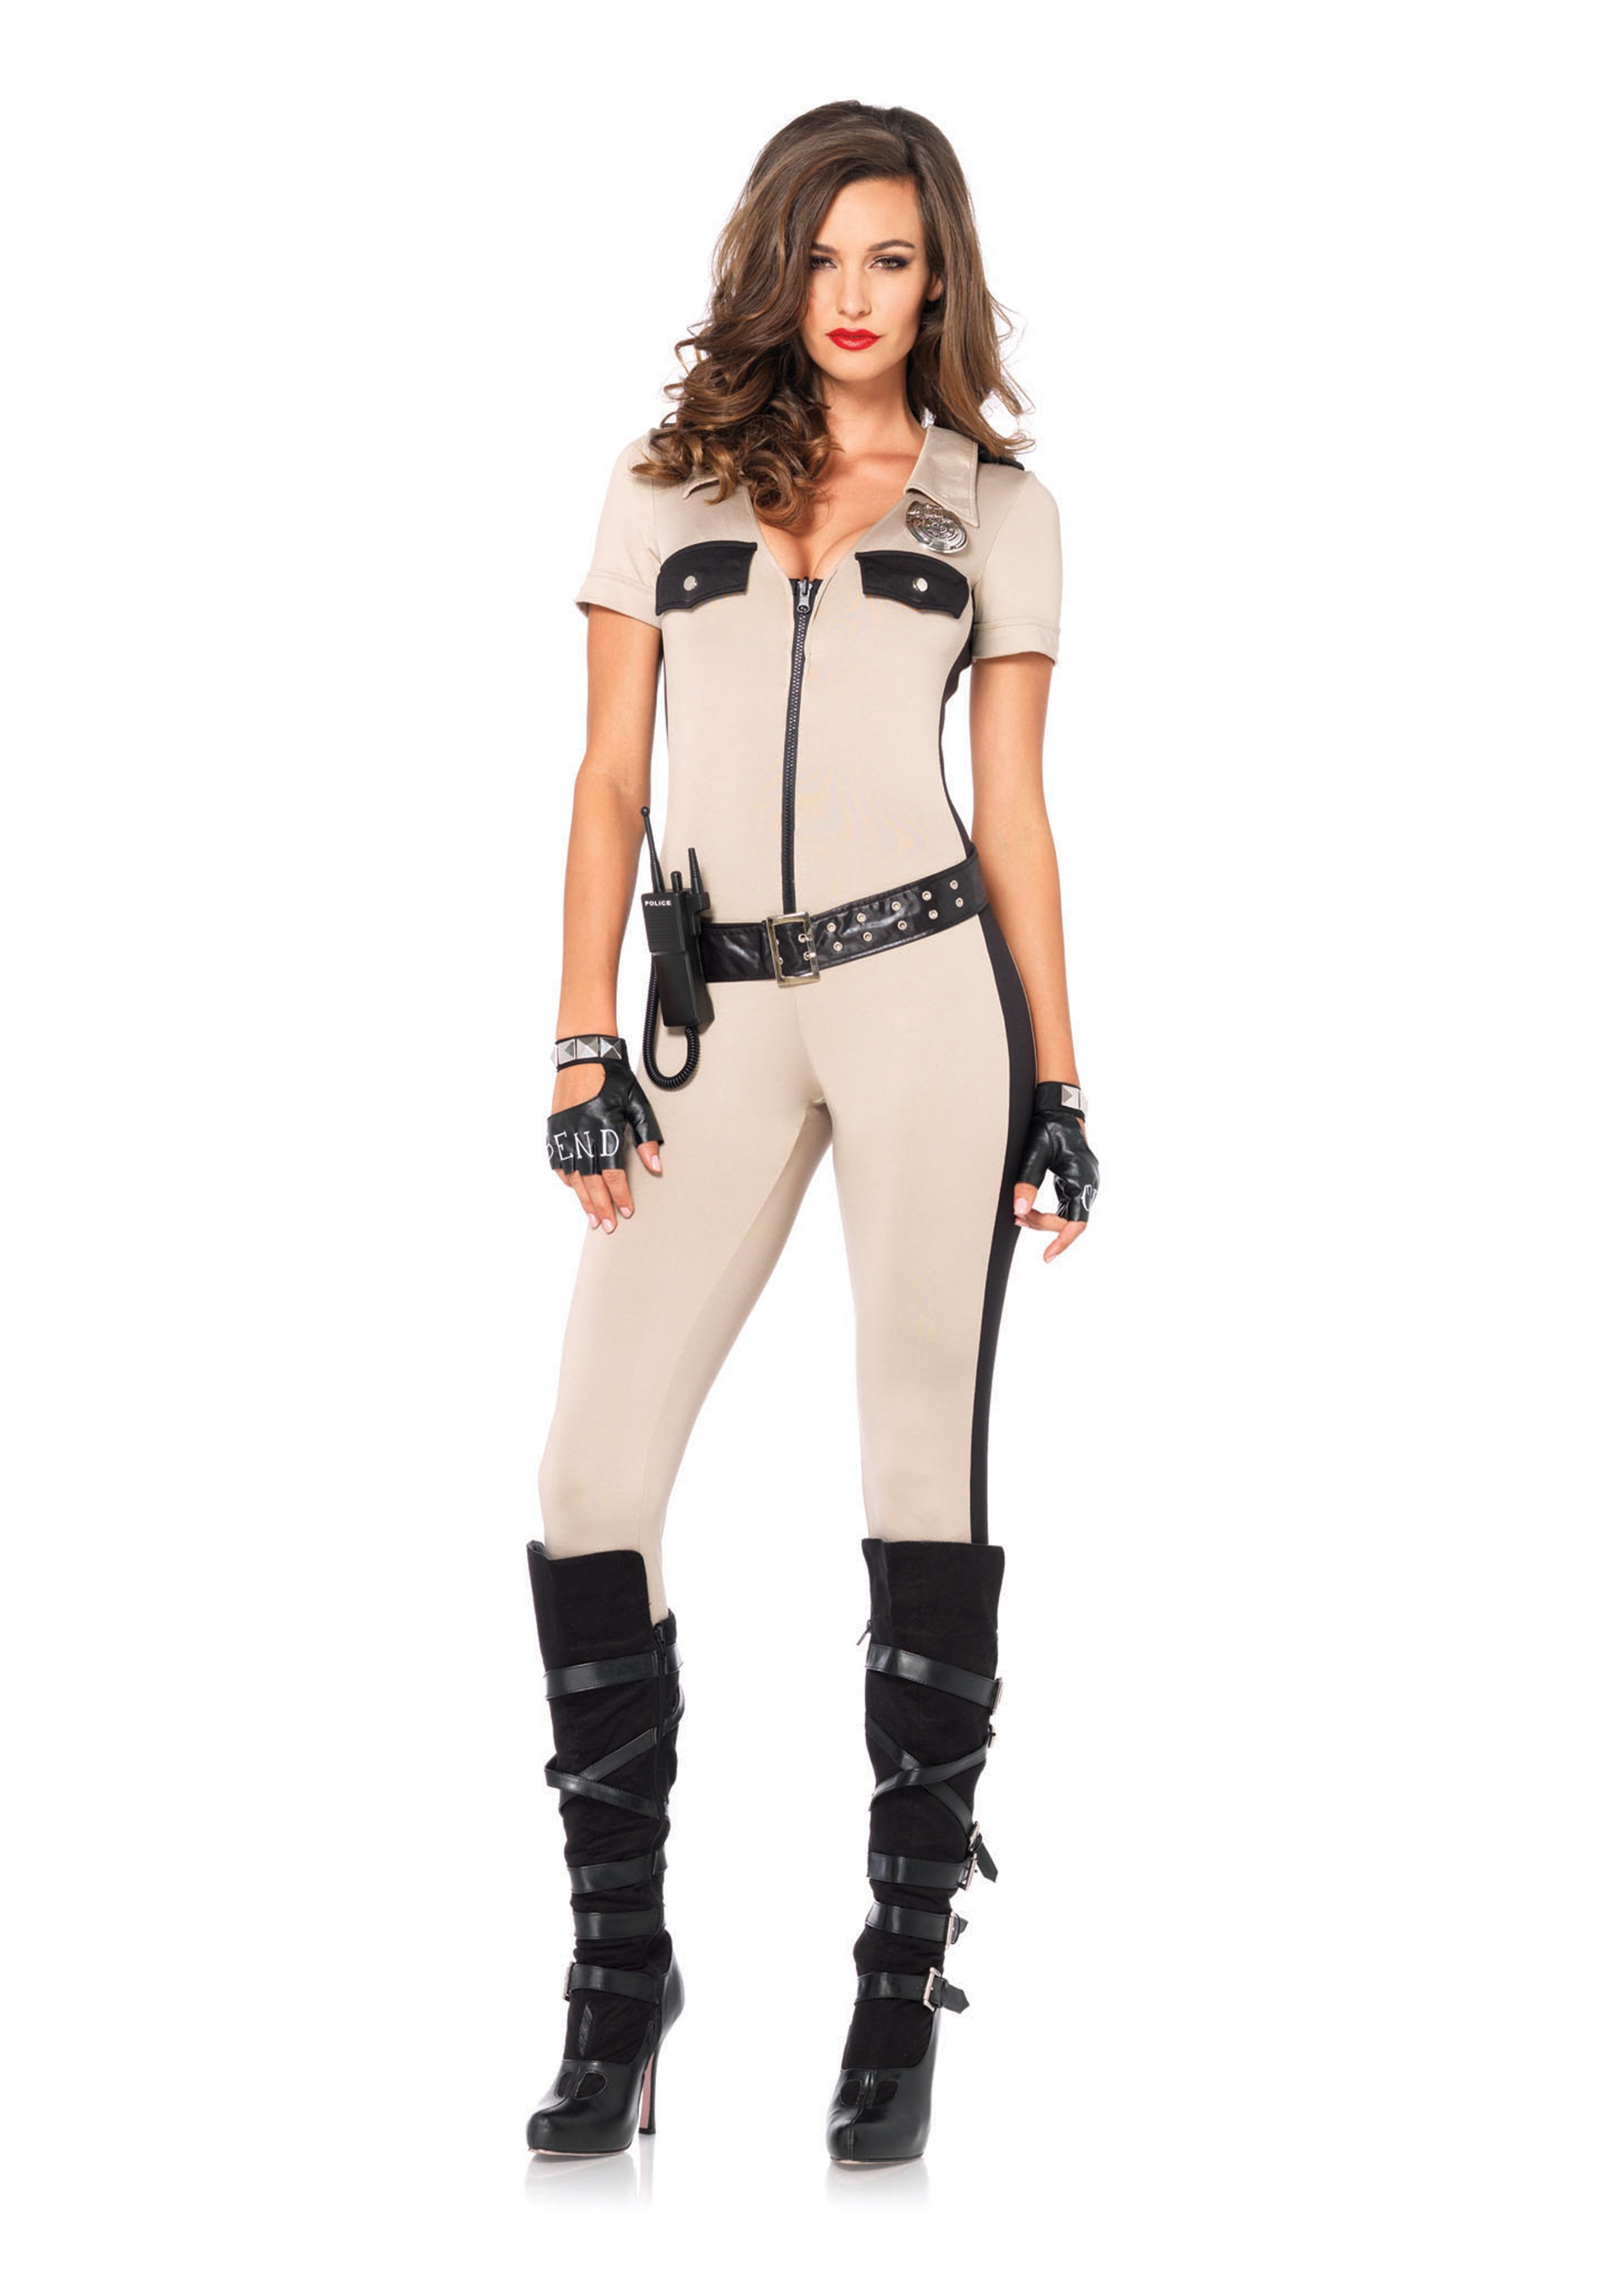 Adult cop costume would like